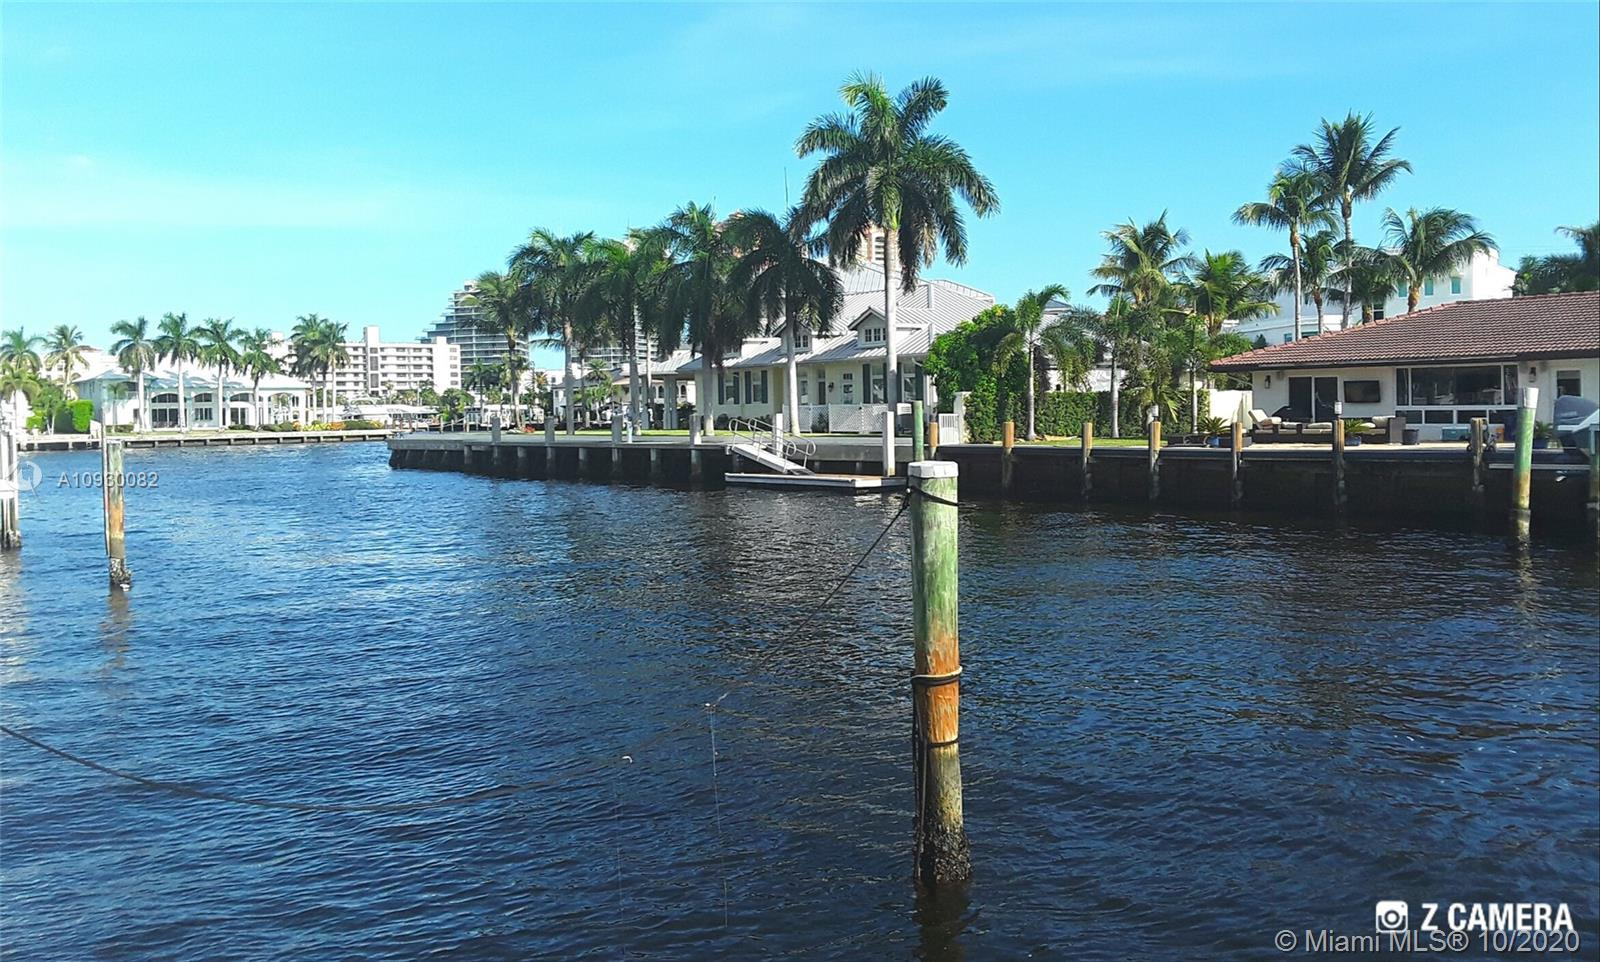 "* BEST LOCATION IN ALL ""CORAL RIDGE"" *  POSITIONED 1 OFF THE POINT WITH  DIRECT INTRACOASTAL VIEWS AND SOUTHEAST BACKYARD EXPOSURE. THIS PROPERTY HAS 100 FT OF DEEPWATER WITH NO FIXED BRIDGES AND A NEWER SEAWALL... ($100,000 SAVINGS FOR NEW OWNER). SUPER WIDE CANAL (115 FT) ALLOWS FOR MORE PRIVACY AND WIDE WATER VIEWS. DOLPHIN PILES/100 AMP ELECTRICAL SERVICE IS ALREADY IN PLACE TO HELP ACCOMODATE A LARGE YACHT. THIS HOME IS ALSO LOCATED IN THE VERY SOUGHT AFTER ""BAYVIEW SCHOOL"" DISTRICT. 10,000 SQ FT LOT WITH GOOD ELEVATION...READY FOR NEW CONSTRUCTION! LOTS LIKE THIS RARELY COME ON THE MARKET! BUILD YOUR DREAM HOME IN ONE OF FORT LAUDERDALES'S  FAVORITE SUBDIVISIONS. VERY CLOSE PROXIMITY TO PARKS, RESTAURANTS AND LOCAL SHOPS! INTERNATIONAL AIRPORT IS ONLY 20 MINUTES AWAY! EASY TO SHOW!"